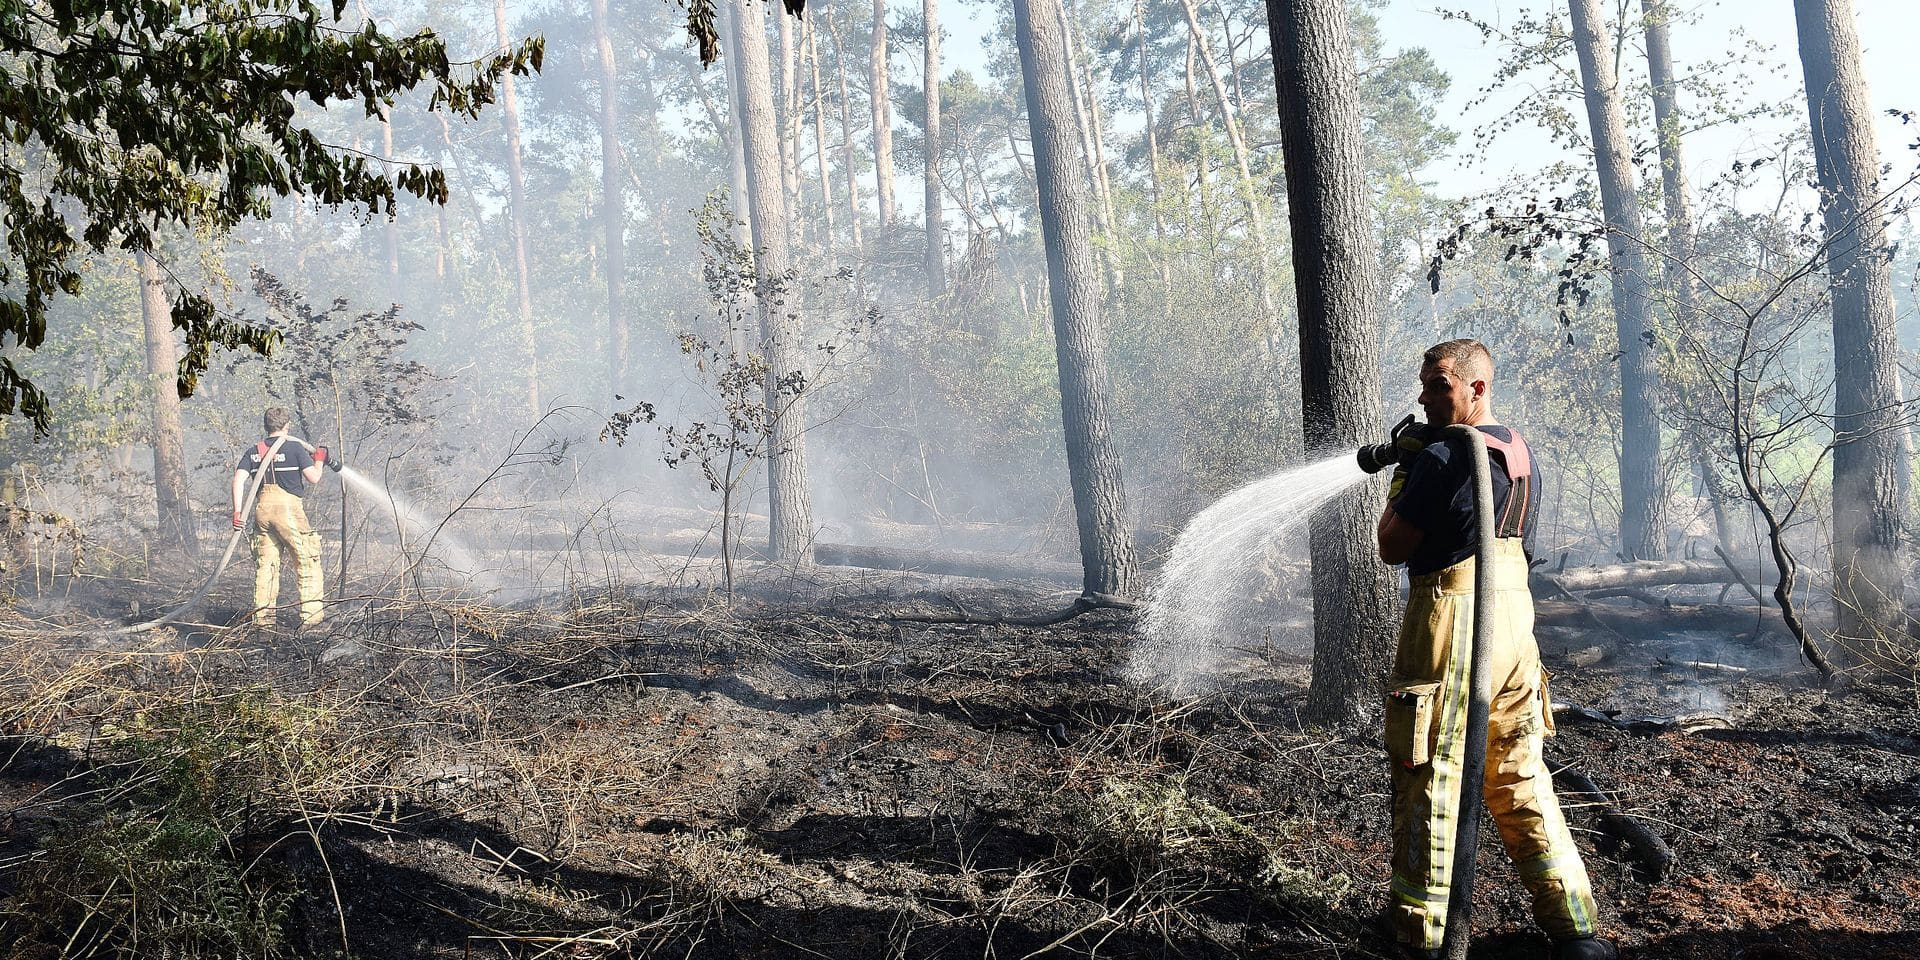 Firelen pictured as a fire started earlier today in the Villers wood in Genappe, Baisy-Thy, Walloon Brabant, Monday 19 June 2017, while Belgium face a dry weather and high temperatures recently. BELGA PHOTO JEAN-LUC FLEMAL